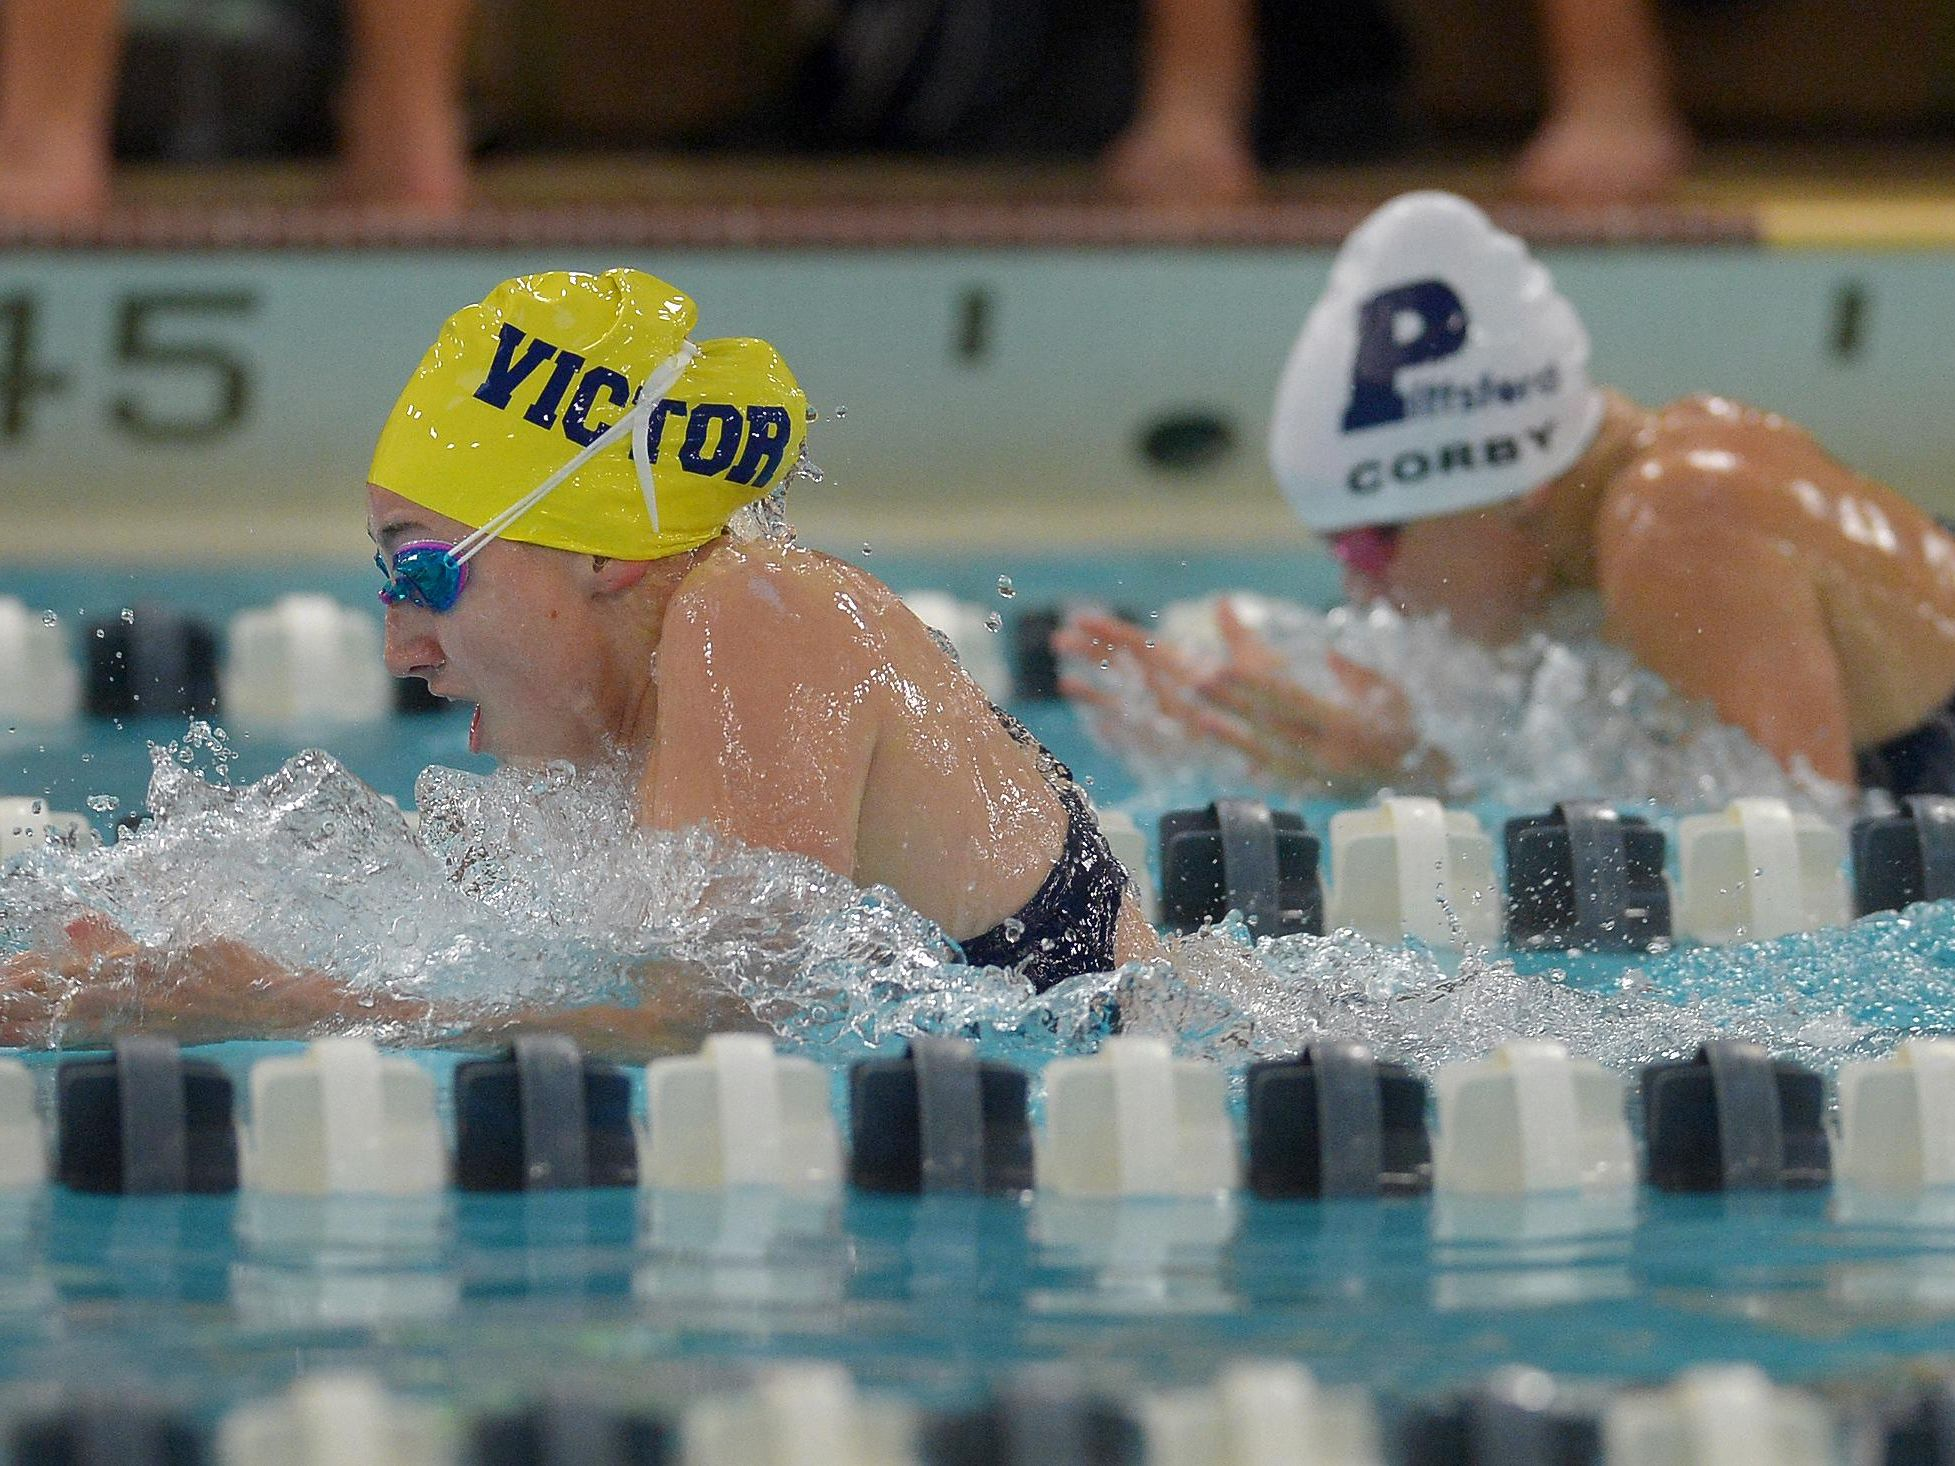 Victor's Mia Baggett, left, leads Pittsford's Emma Corby to win the 100 yard breaststroke with a time of 1:10.11 during regular season meet at Pittsford Mendon High School on Thursday, Sept. 8, 2016.